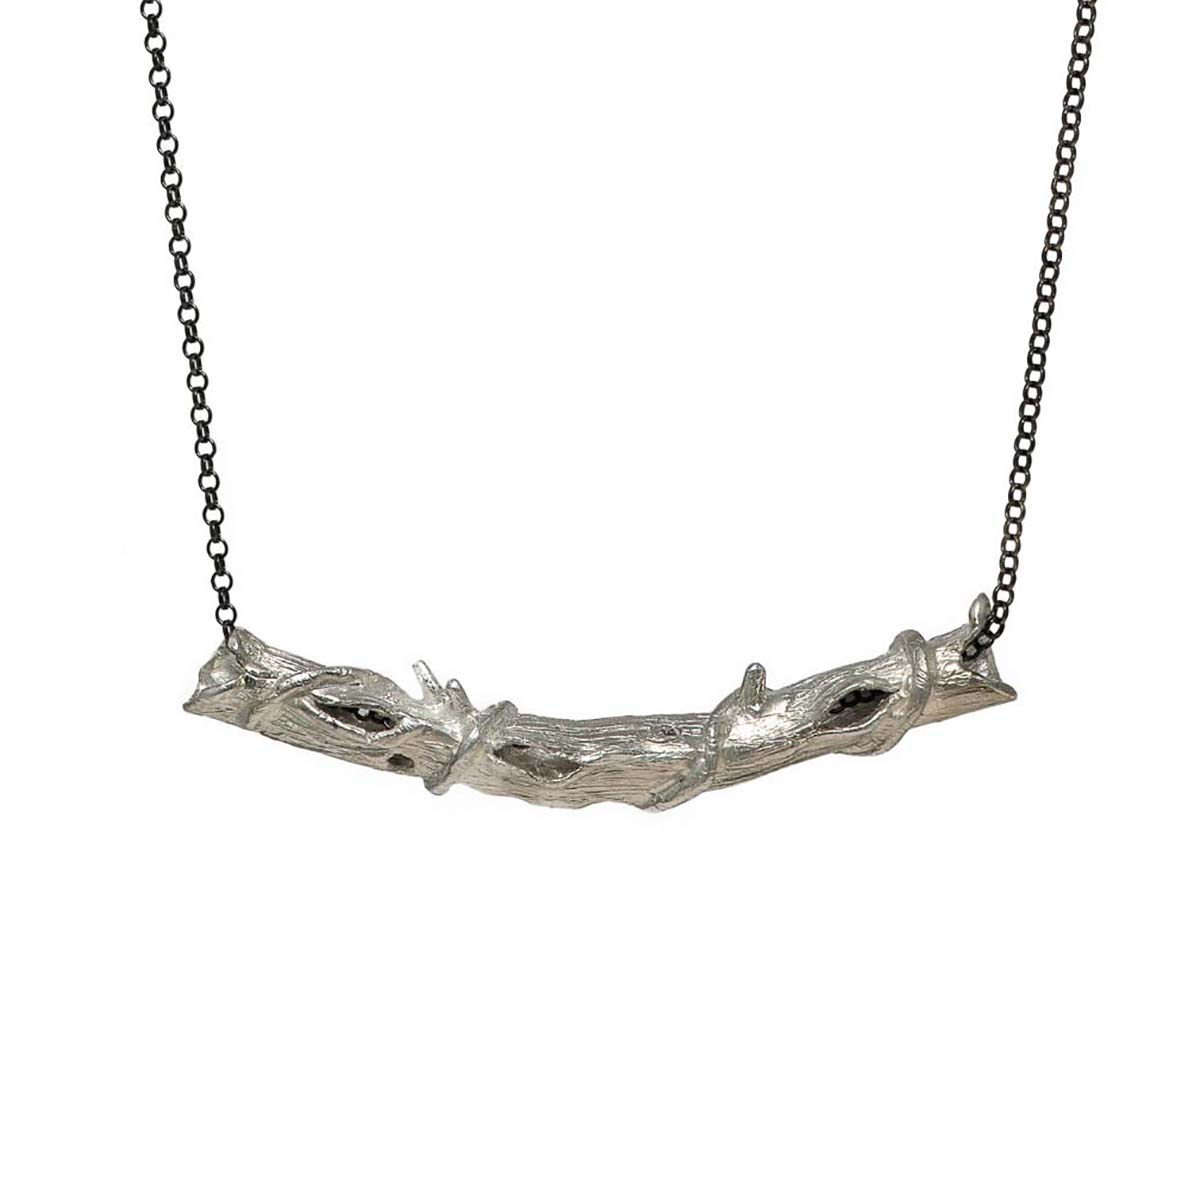 """The """"Branches"""" design are part of the """"Imaginary Nature"""" jewelry collection. Branches jewelry is hand sculptured on wax and casted into sterling silver."""